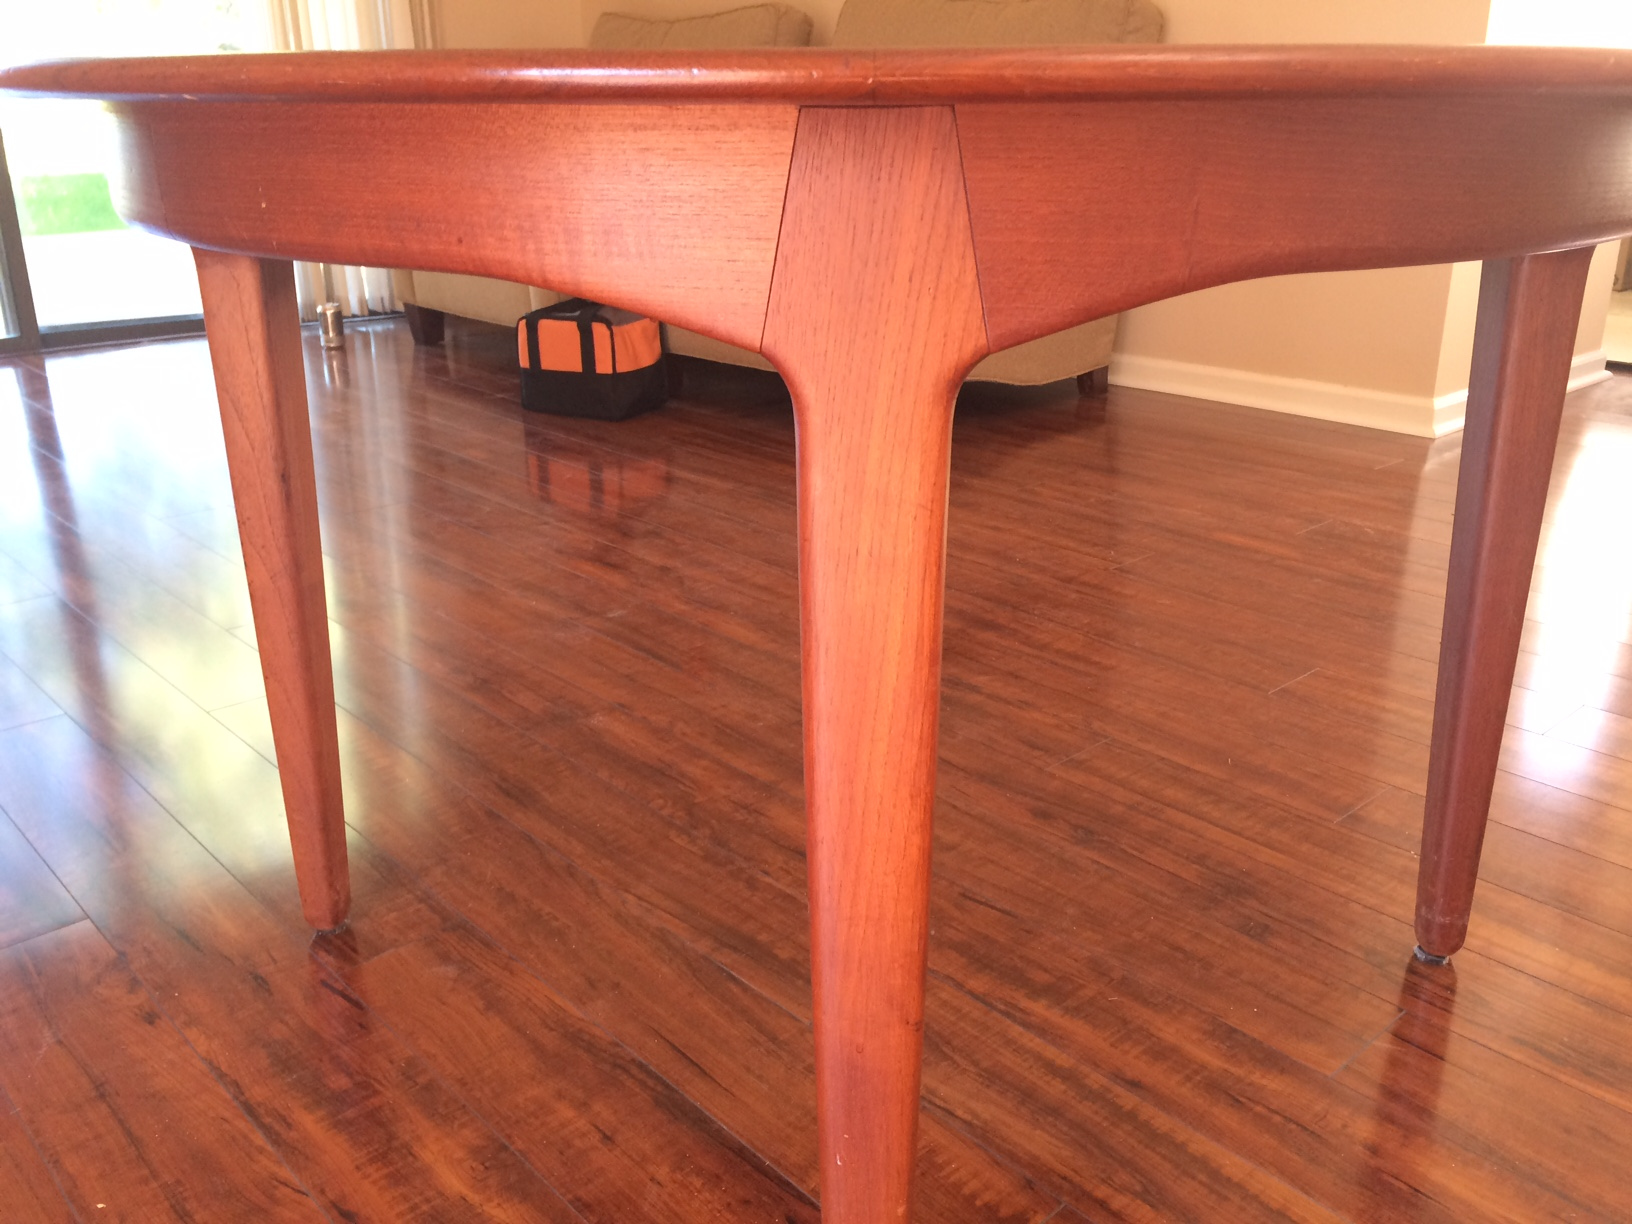 Danish Teak Dining Table By Soro Stole For Sale Classifieds